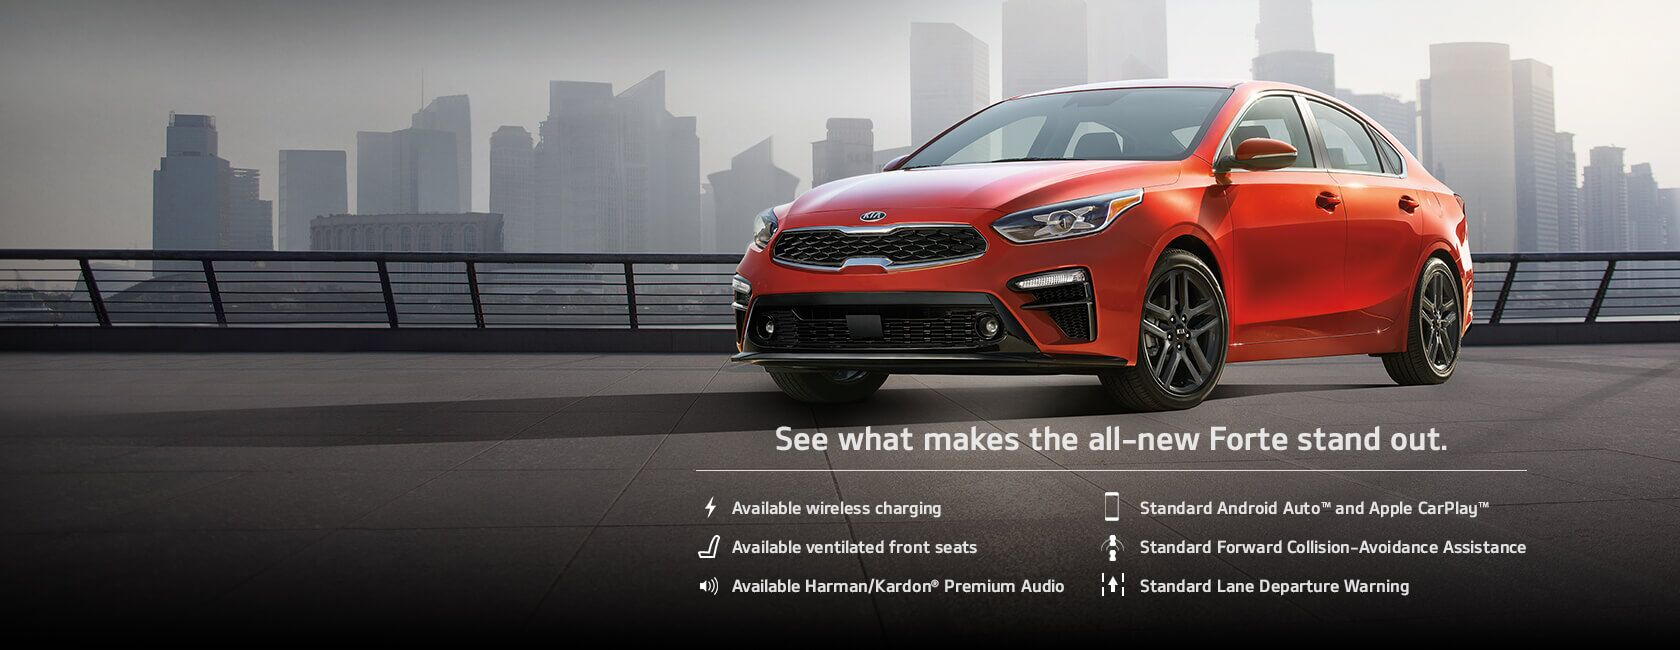 2019 Kia Forte in Lakeland, FL